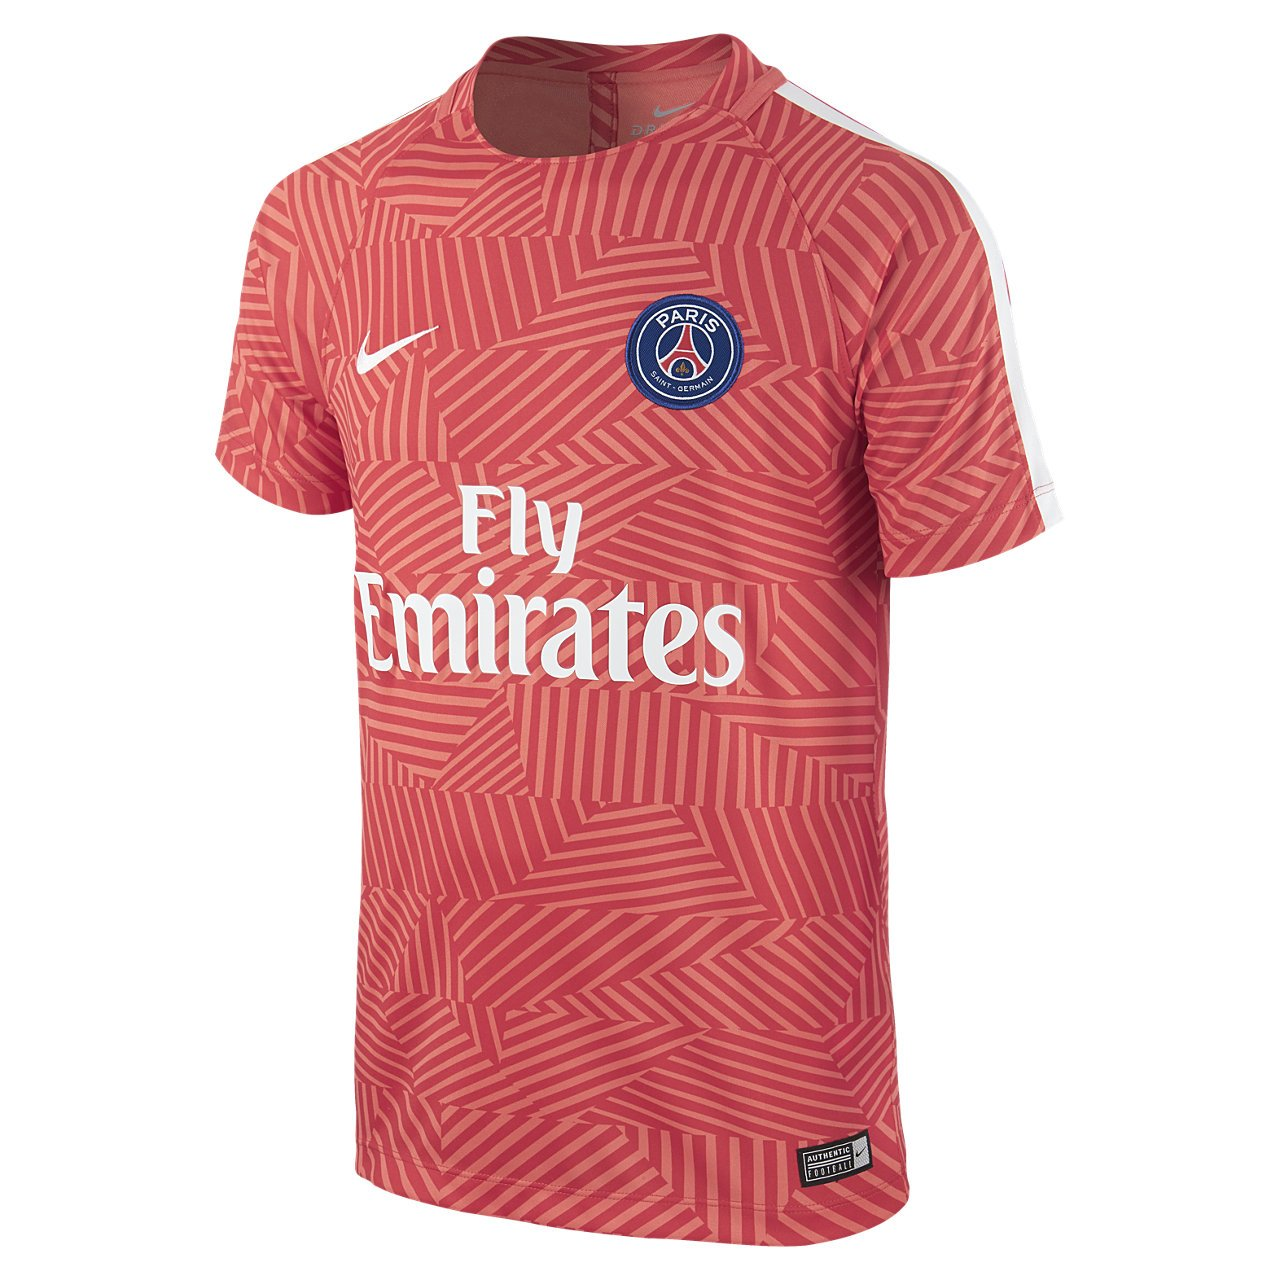 Psg black and pink jersey - Amazon Com 2016 2017 Psg Nike Pre Match Training Shirt Ember Glow Kids Sports Outdoors